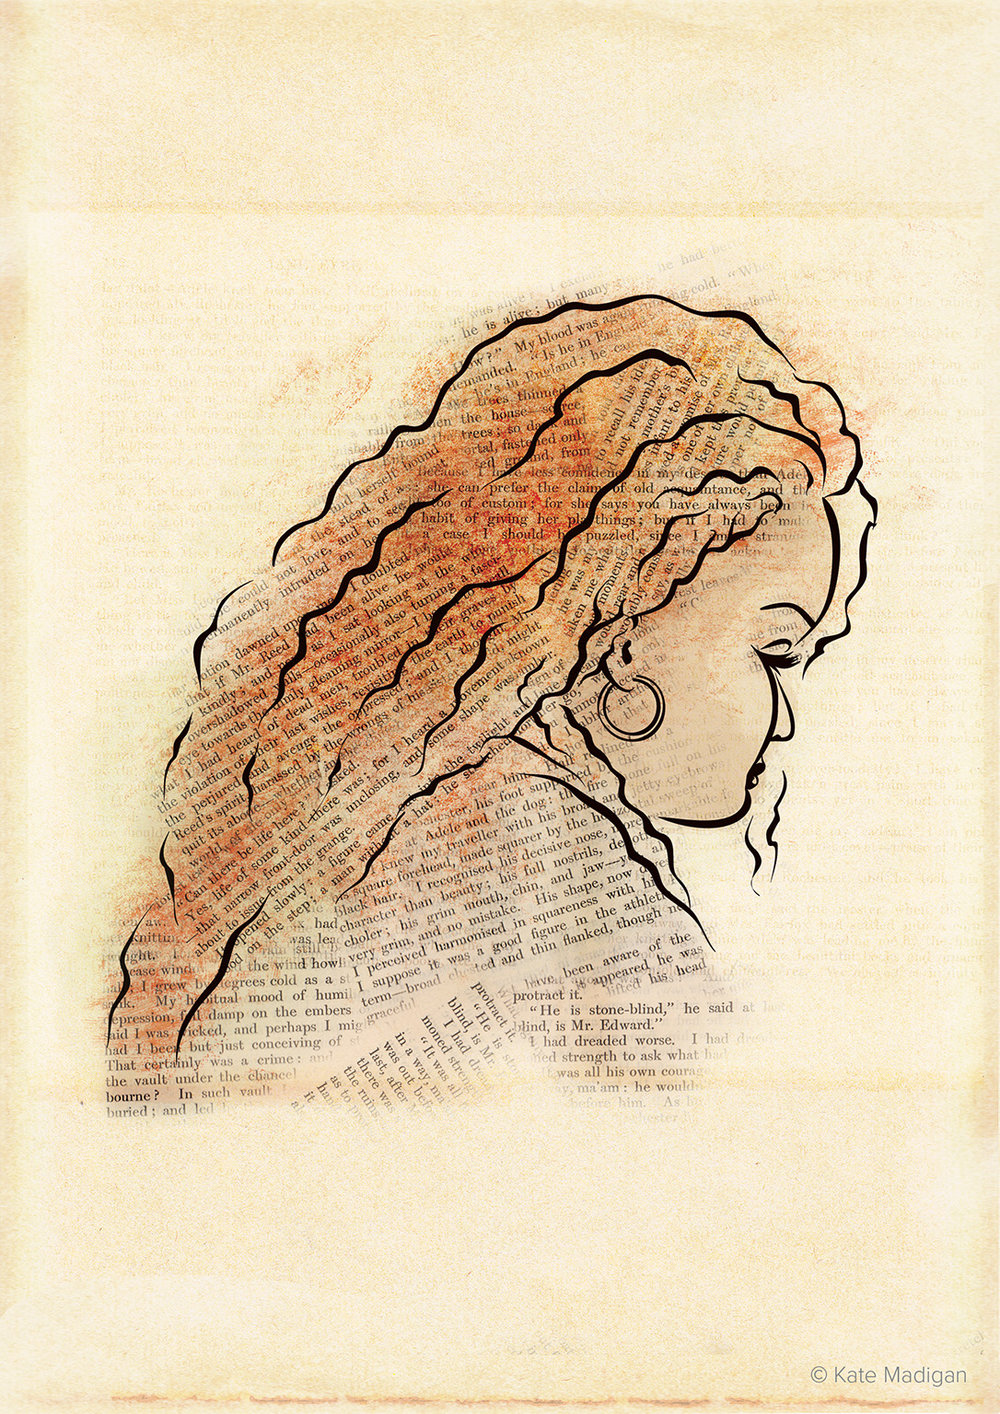 Line drawing of a red-haired woman absorbed in Charlotte Bronte's Jane Eyre. Passages from the book have been scanned in and used to shade her hair and clothing. Created as part of my solo exhibition at Blackwell's Bookshop Oxford. Copyright Kate Madigan.